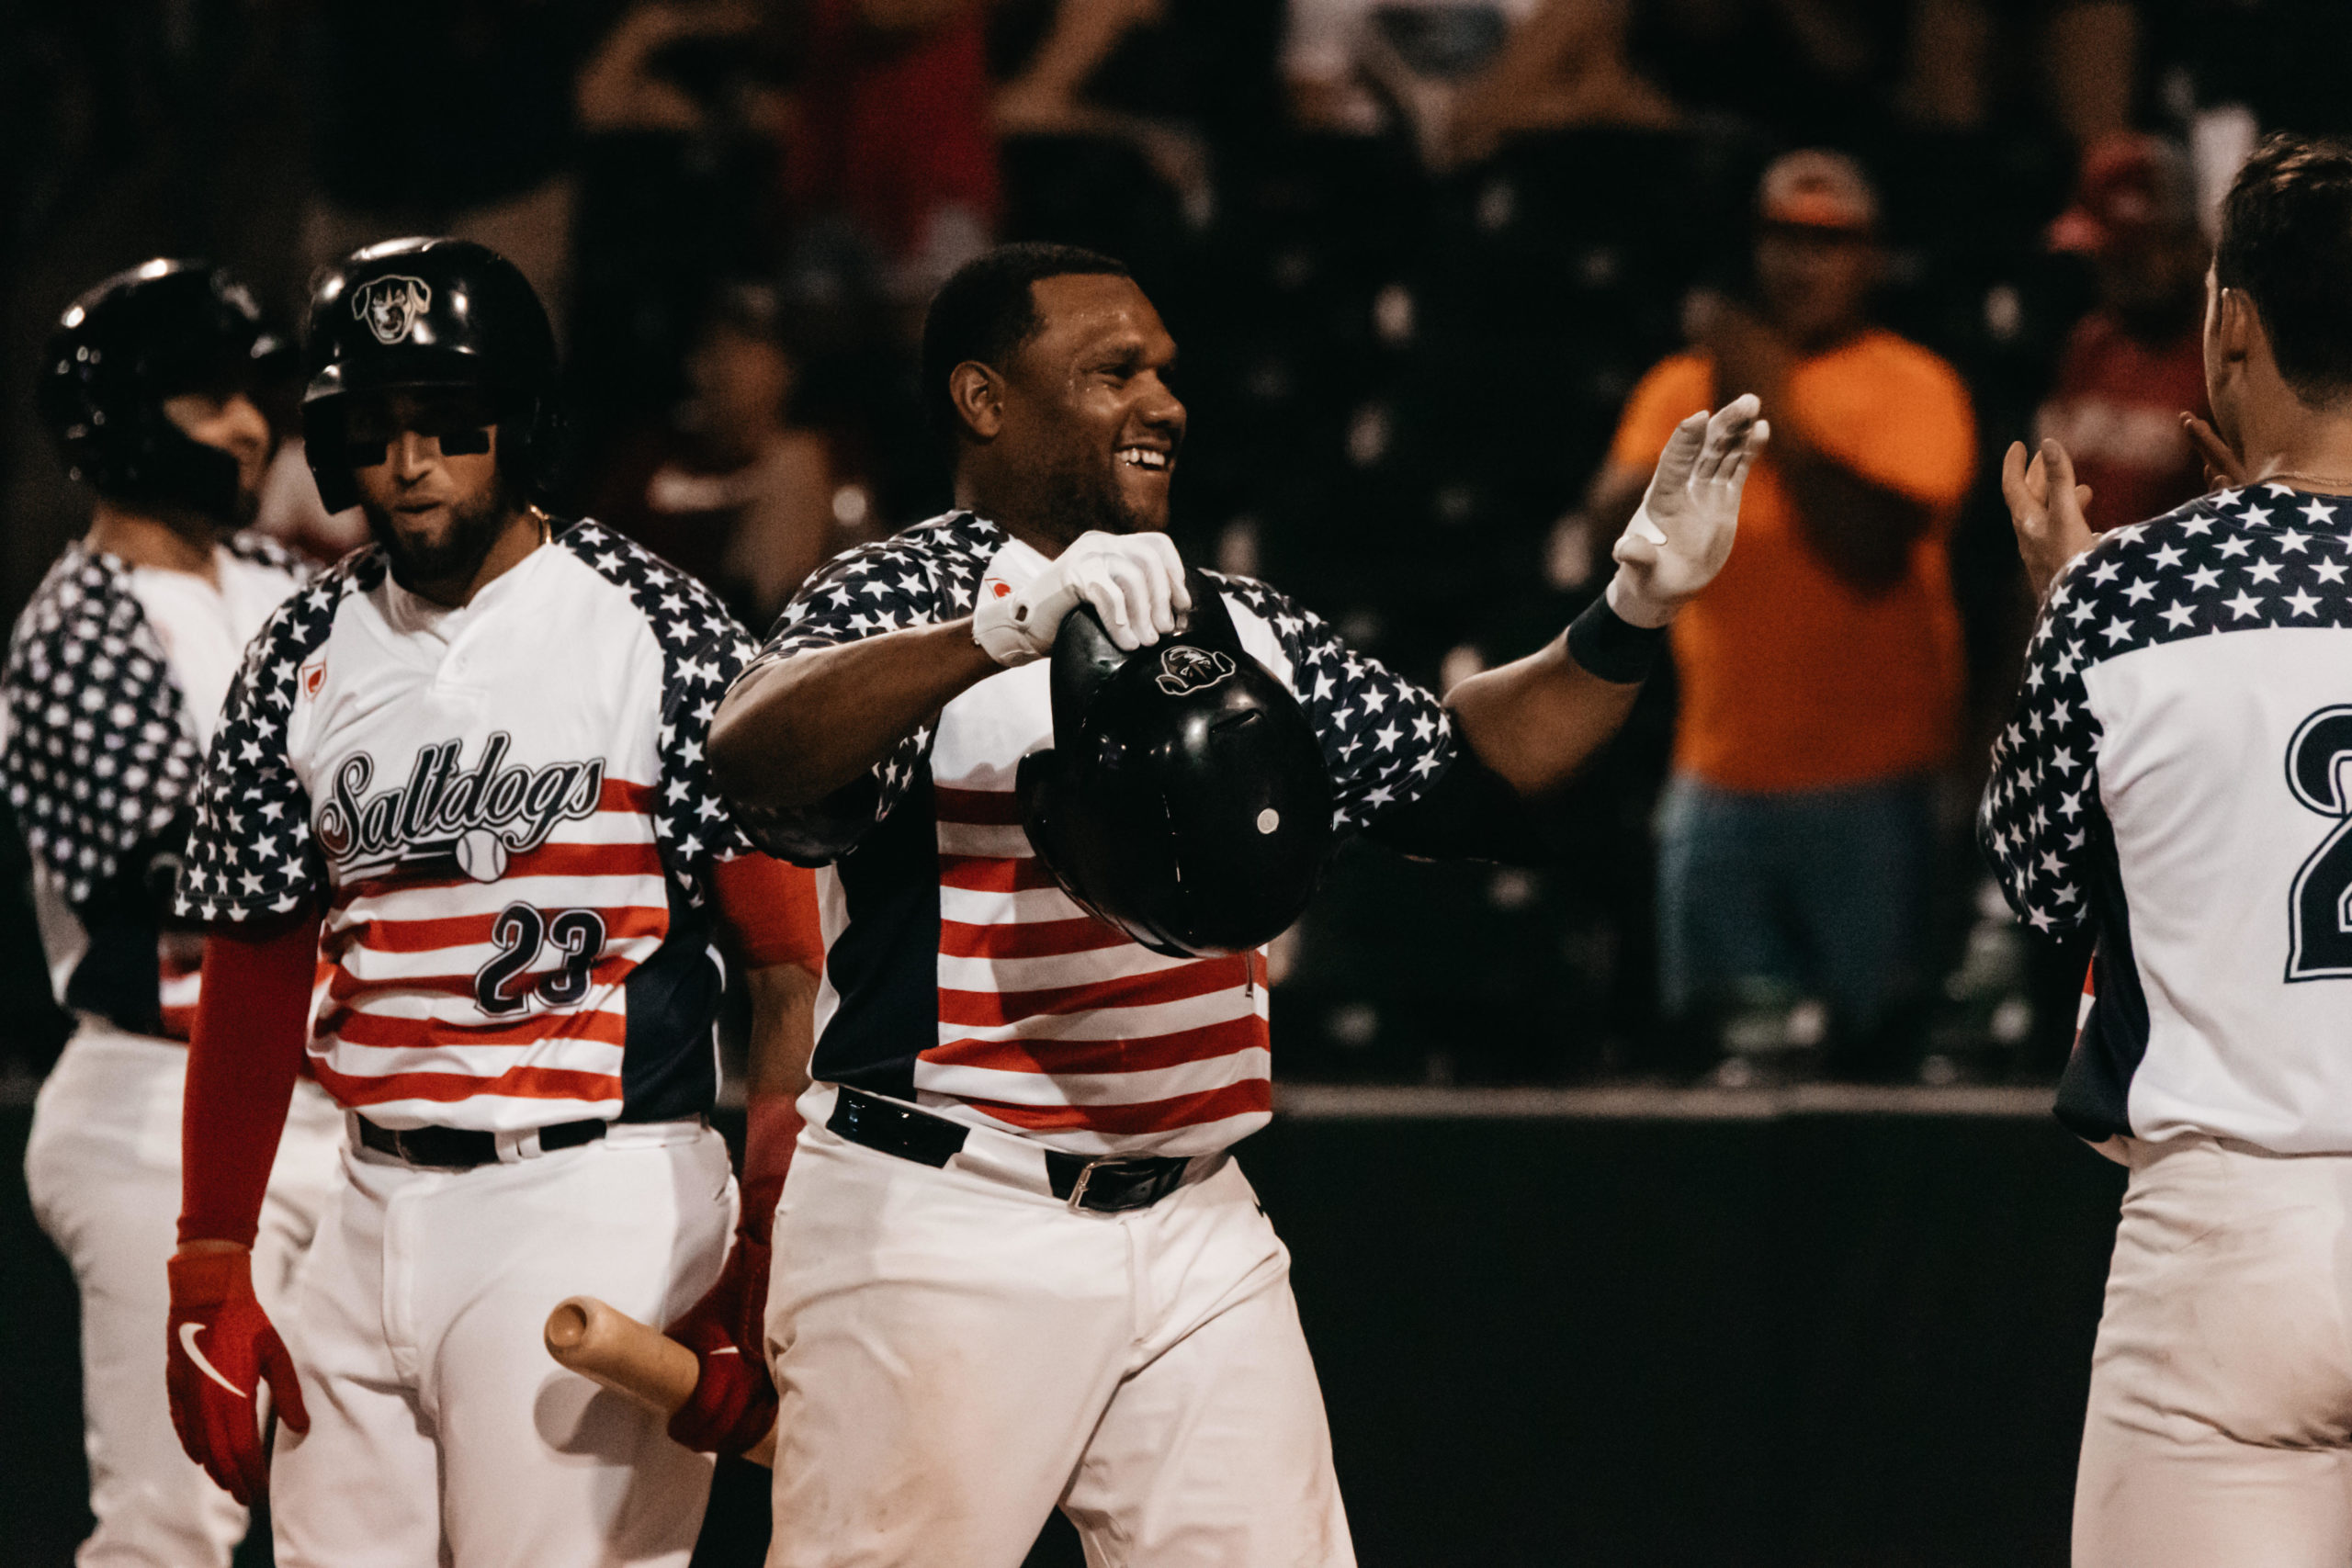 Smith Ties Franchise Record as Saltdogs Complete Sweep